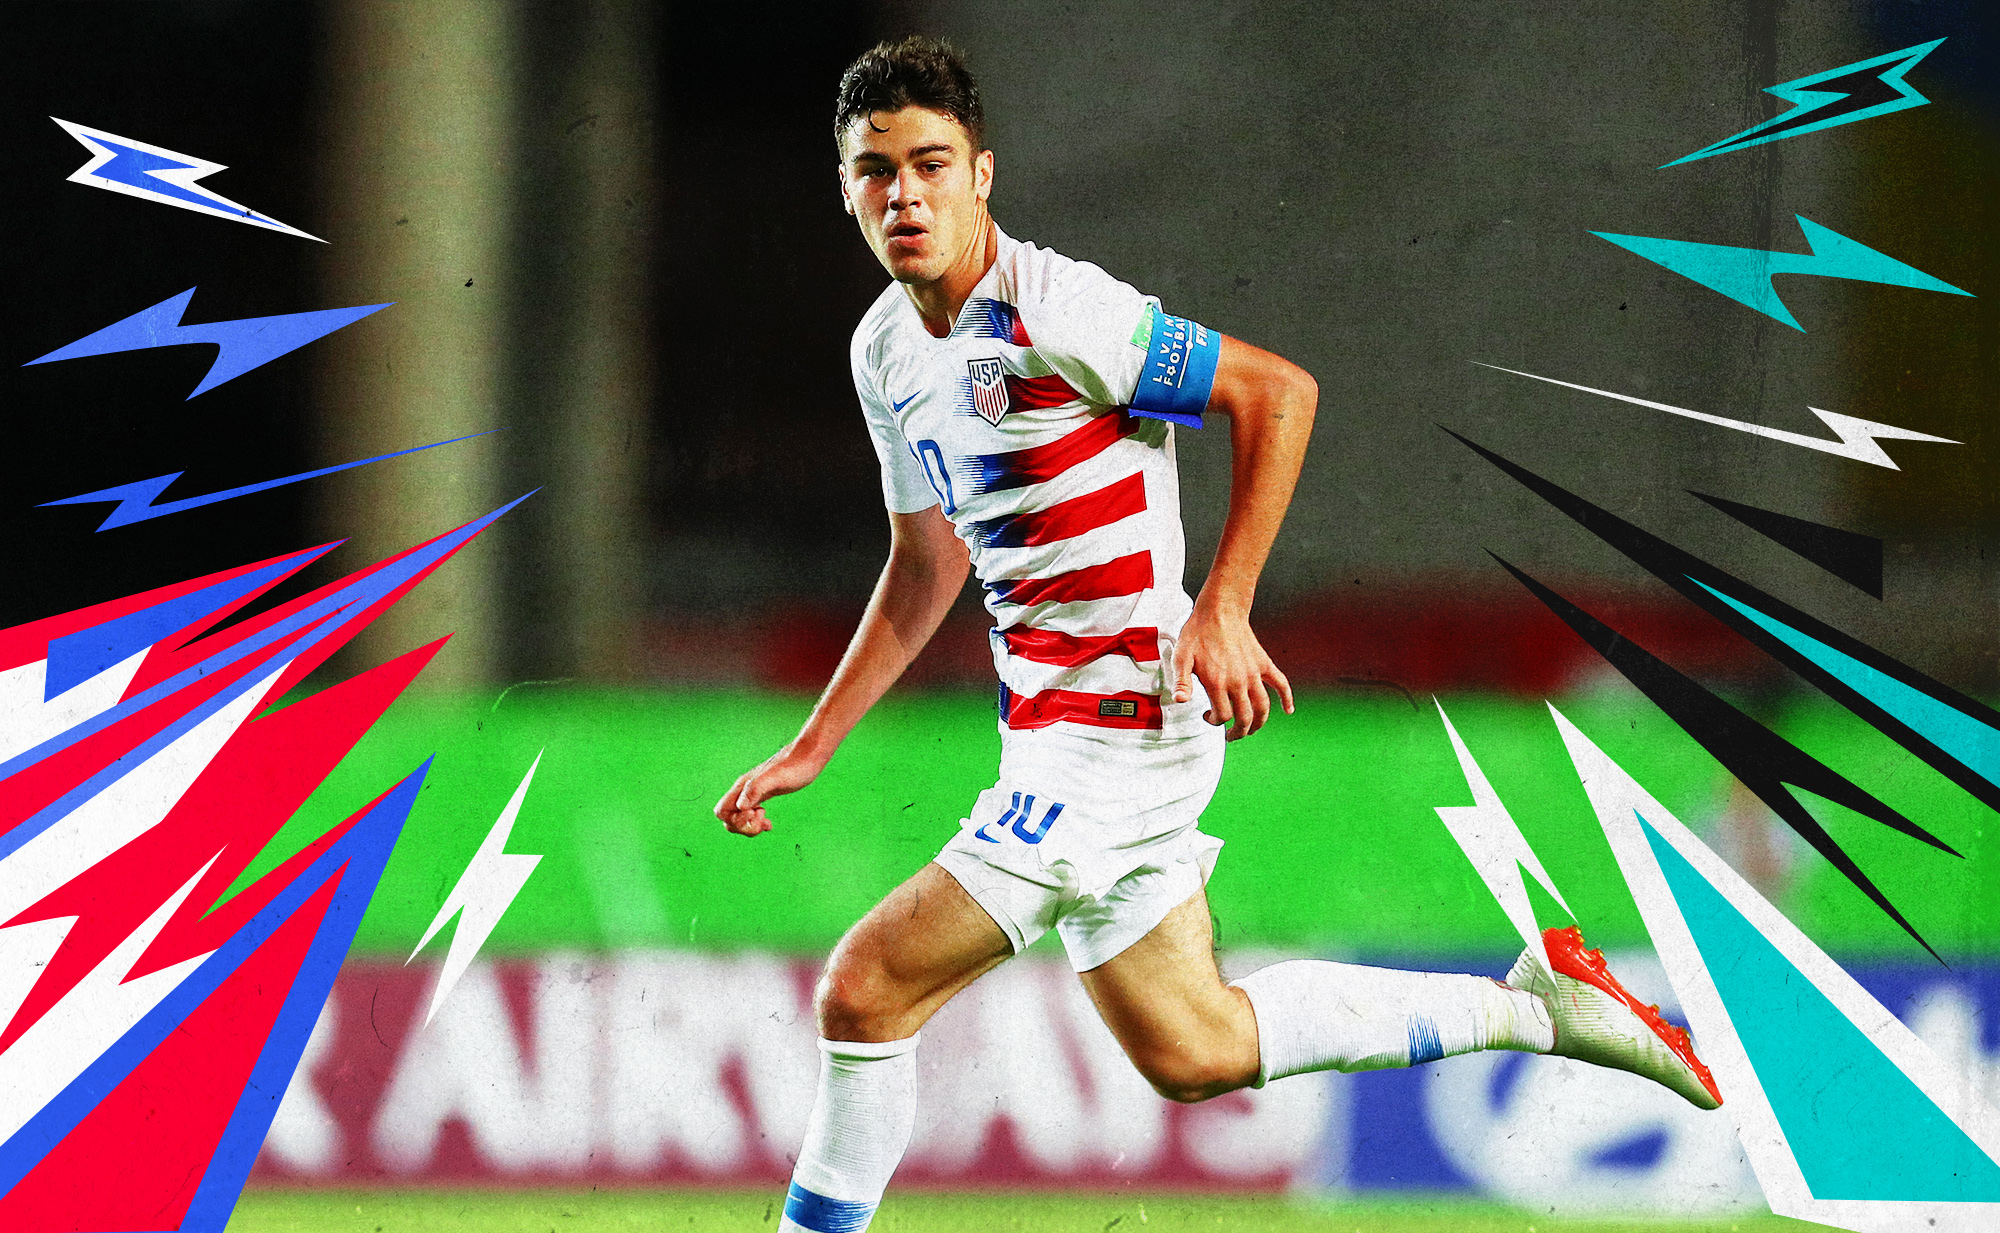 Photo of Giovanni Reyna running during a game while wearing a USMNT uniform. He is surrounded by graphic lightning bolts.